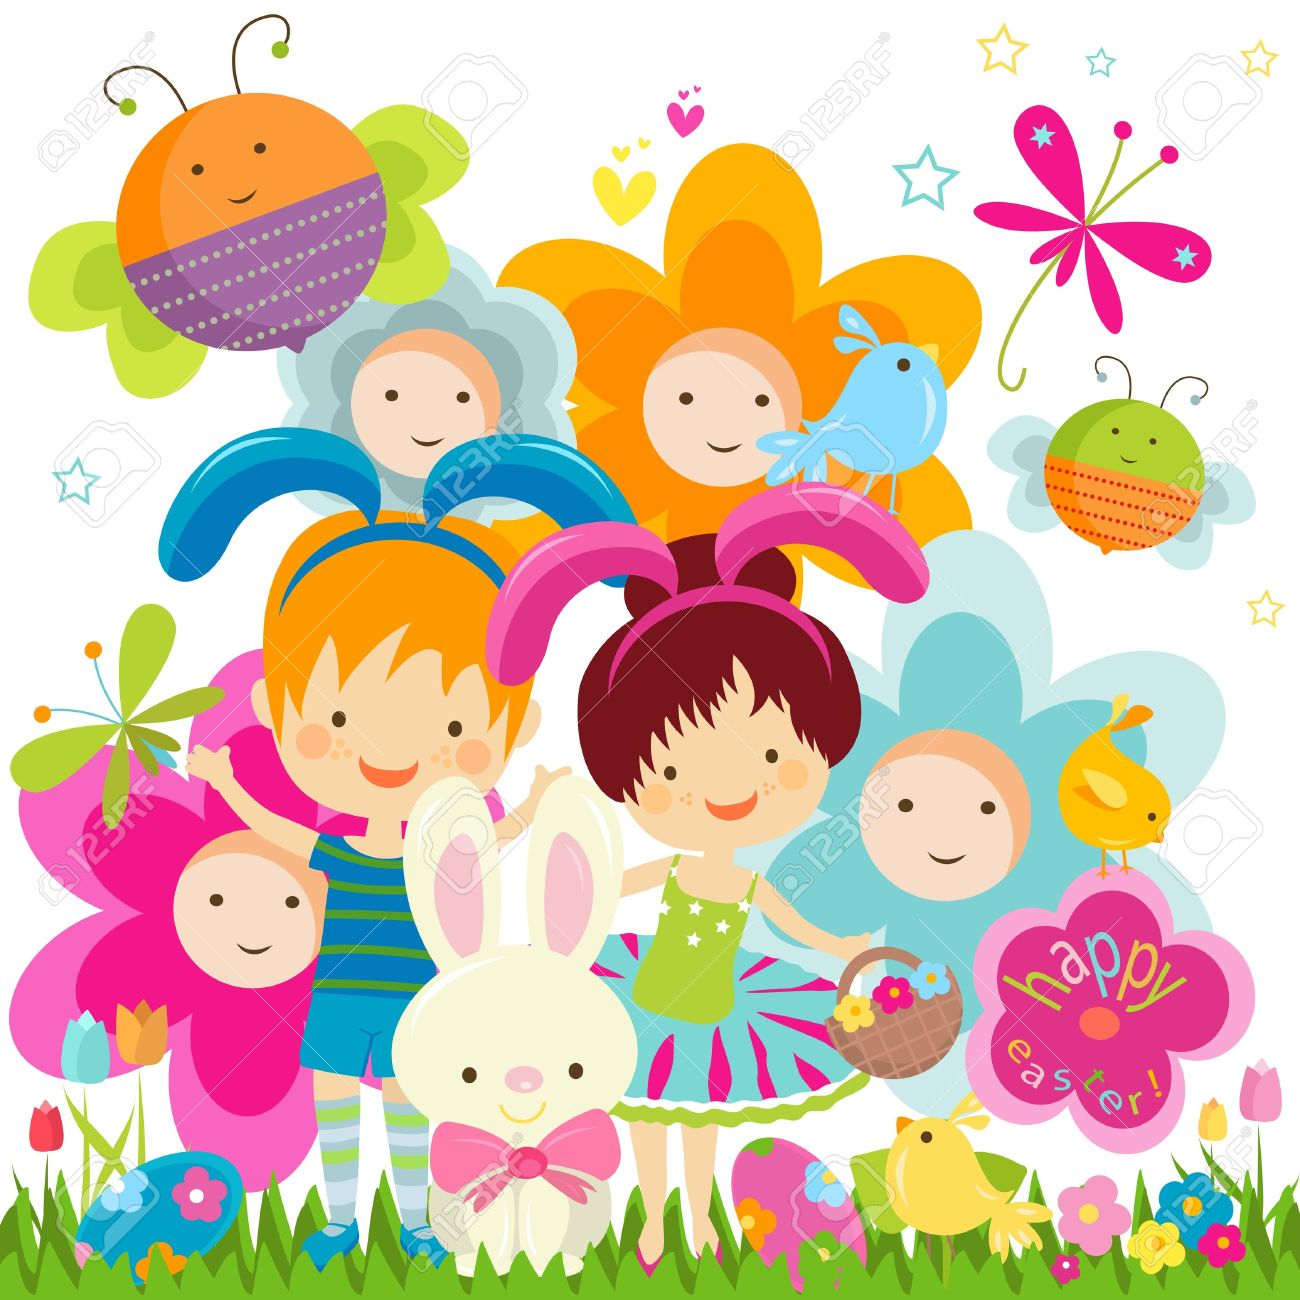 Easter Flower Clipart Background.